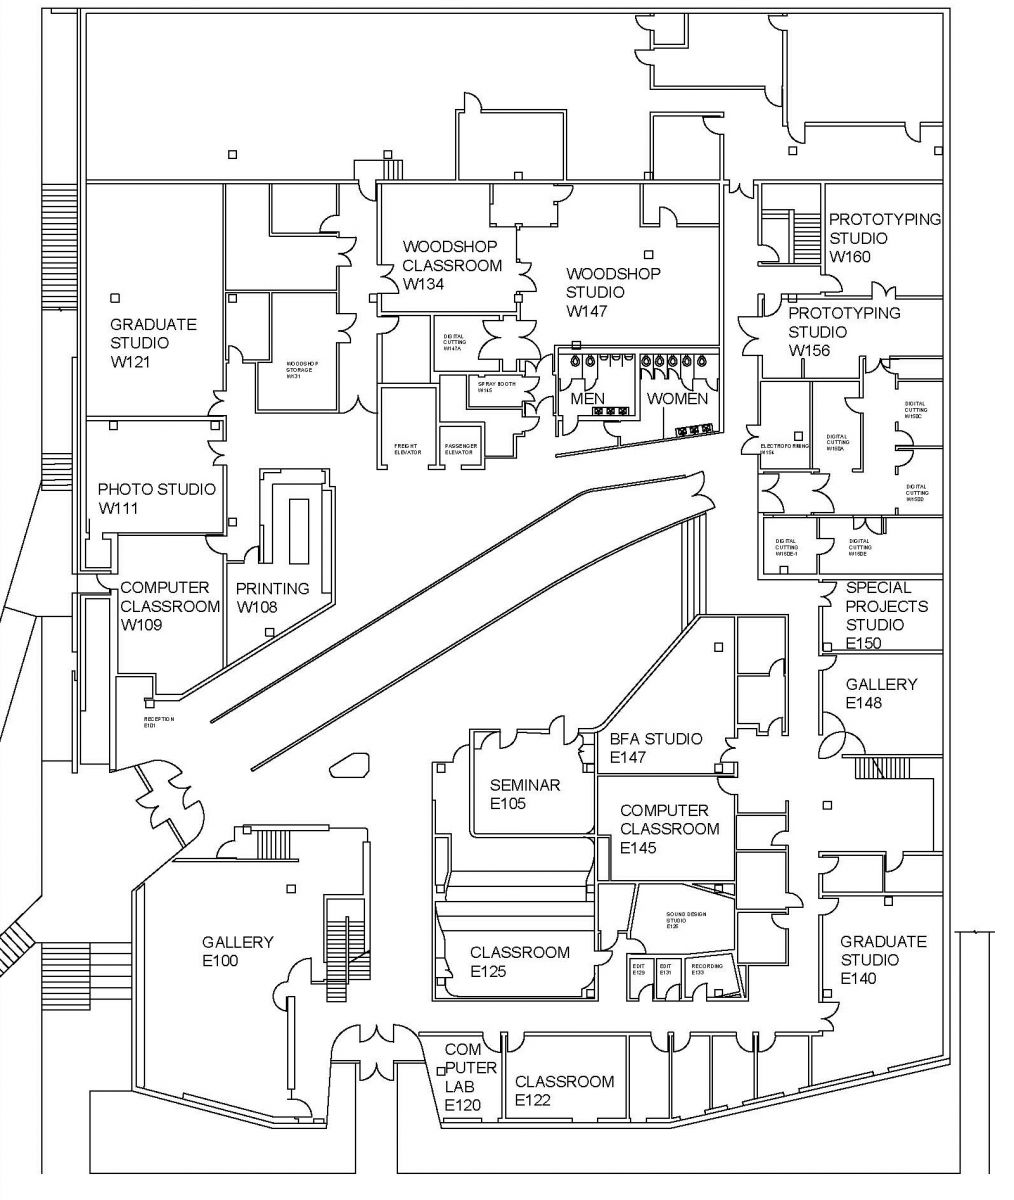 Visual arts building floor plans school of art and art for Building floor plans